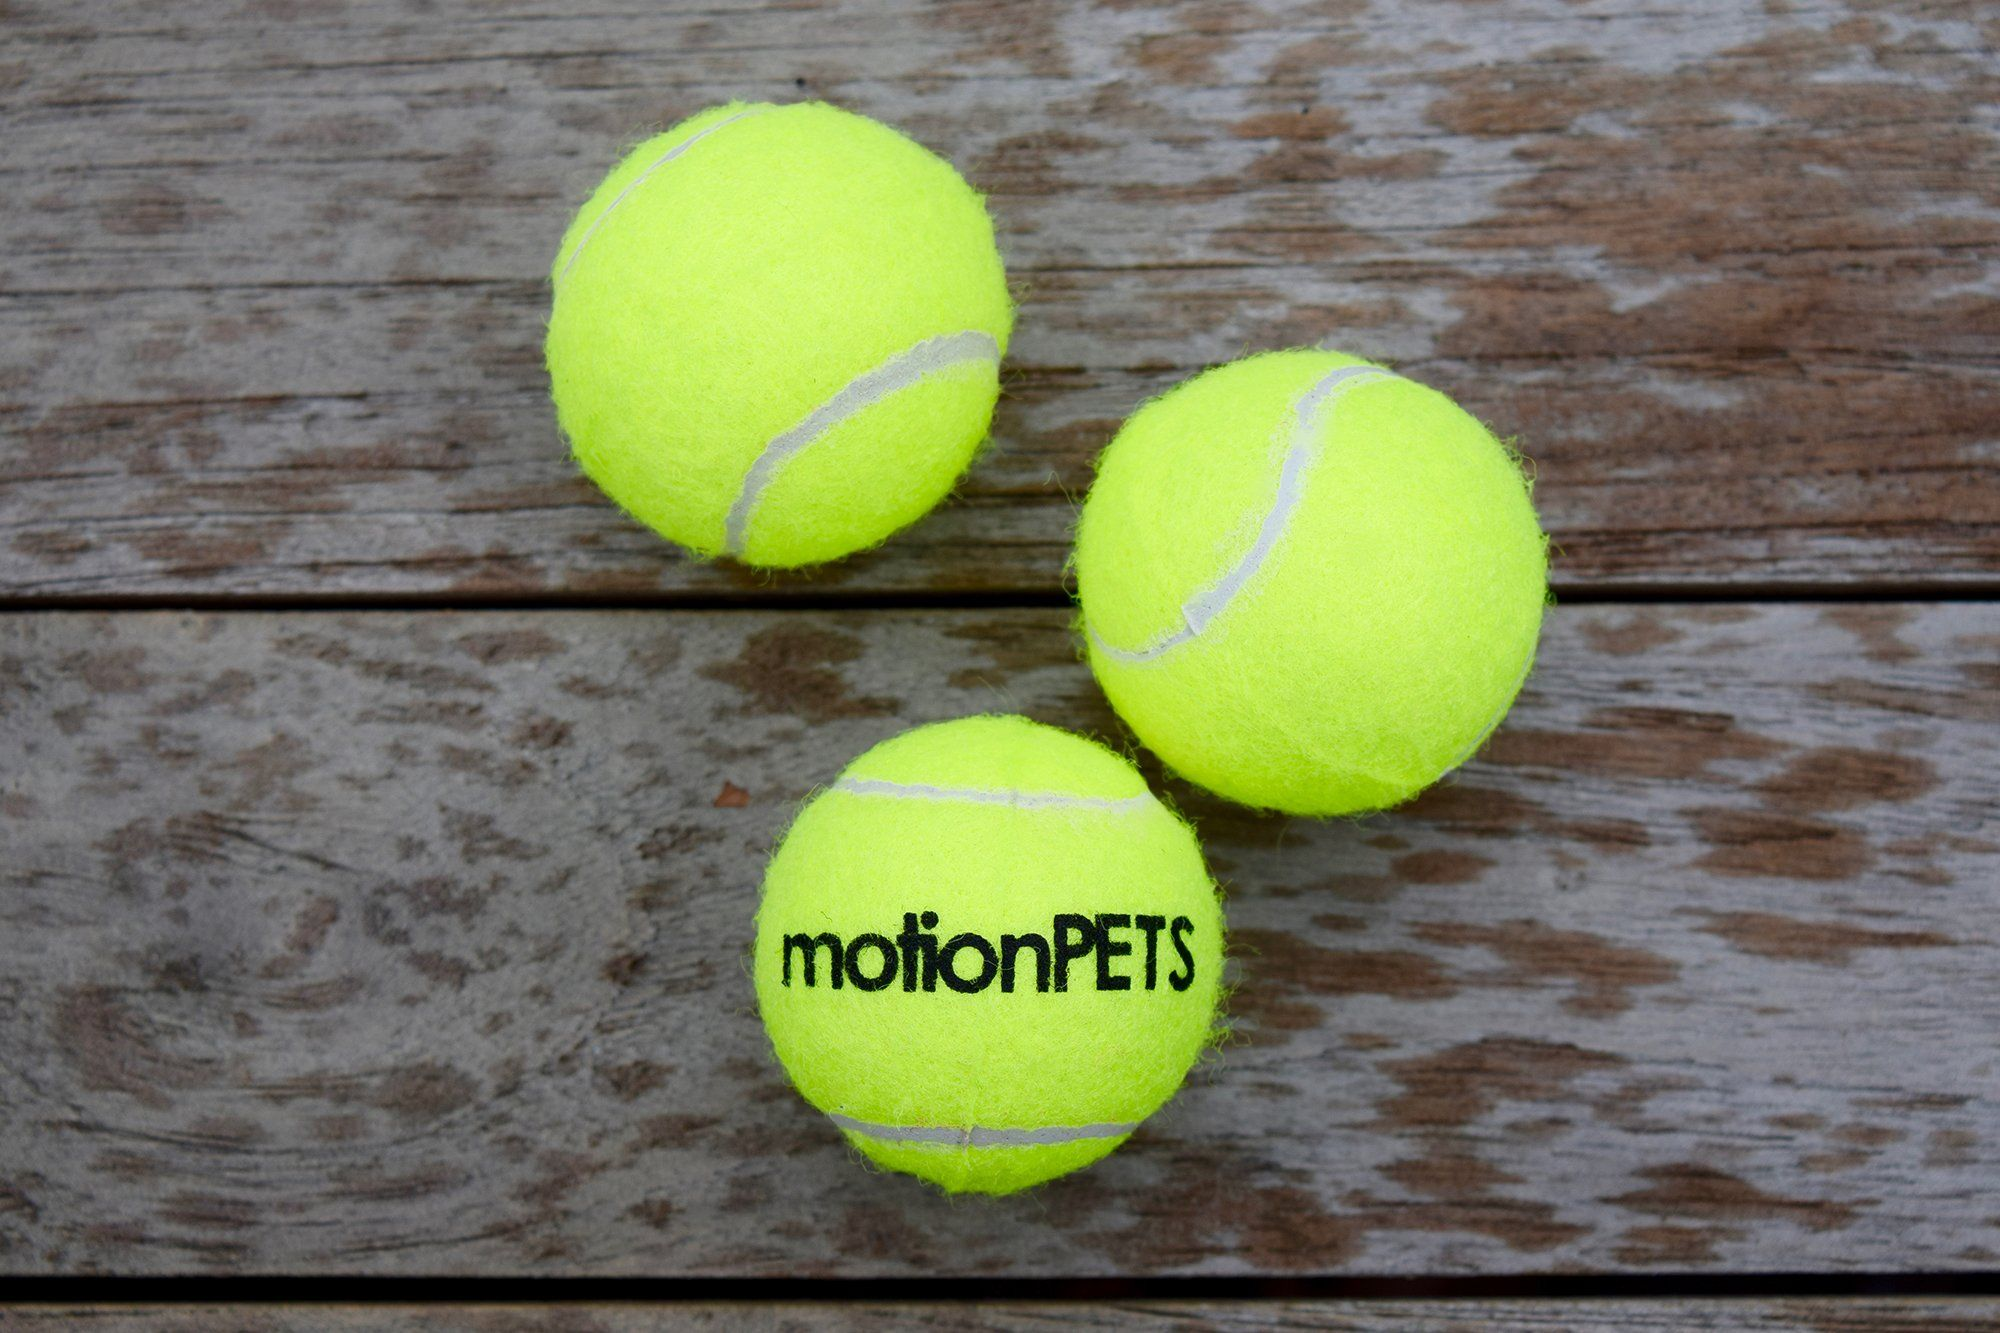 Motionpets Sqb25 Squeaky Dog Toy Tennis Balls Small 2 Yellow Pack Of 3 Read More At The Image Link This Is An Affiliat Tennis Balls Dog Toy Ball Dog Toys